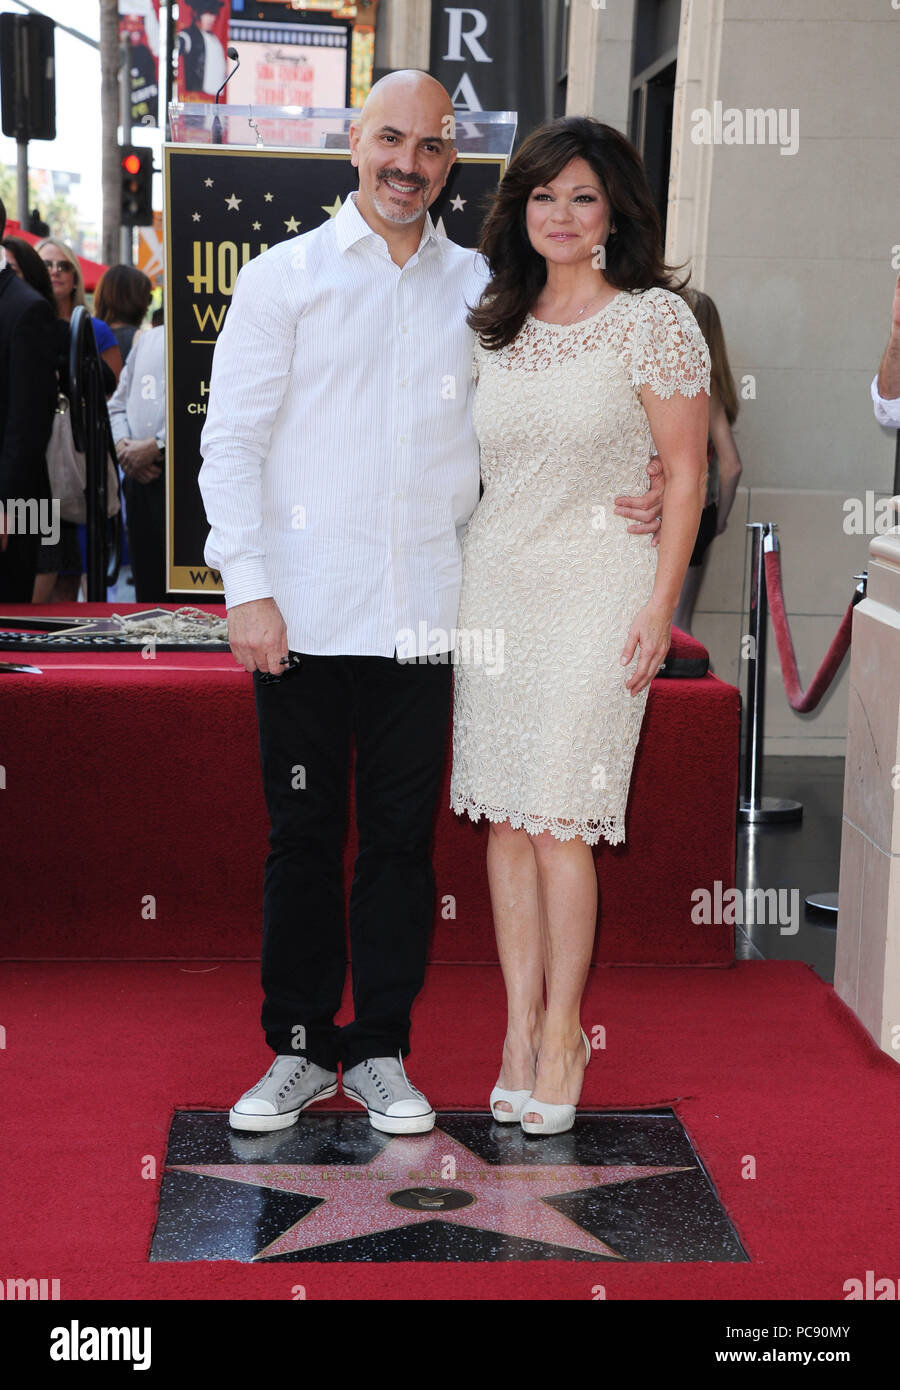 Valerie Bertinelli And Husband Tom Vitale High Resolution Stock Photography And Images Alamy